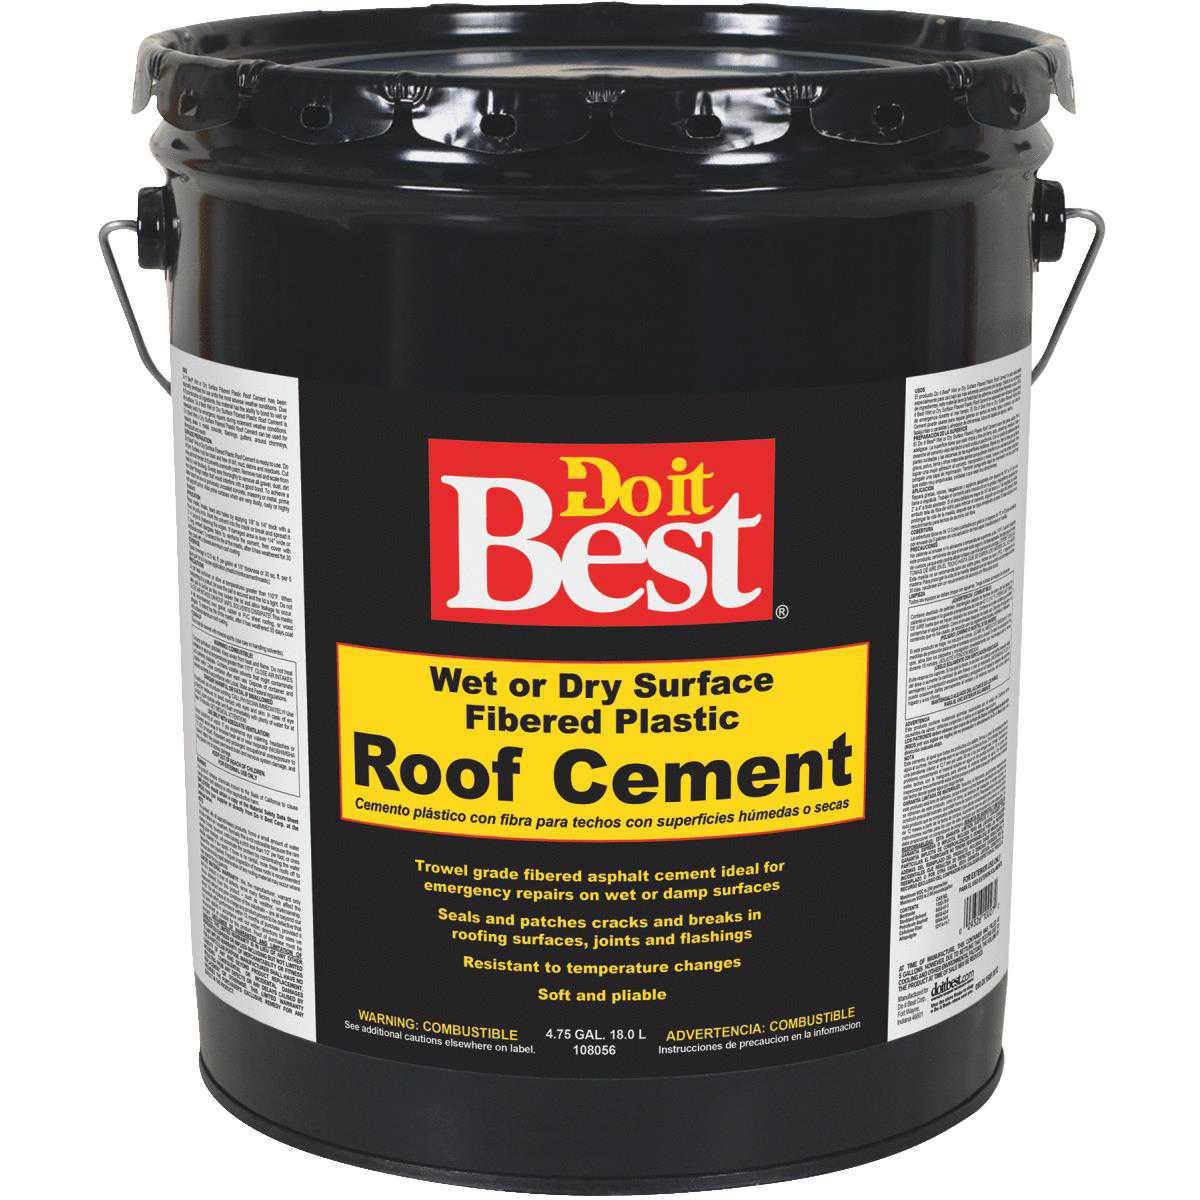 Premier Wet or Dry Plastic Roof Cement & Patching Sealant